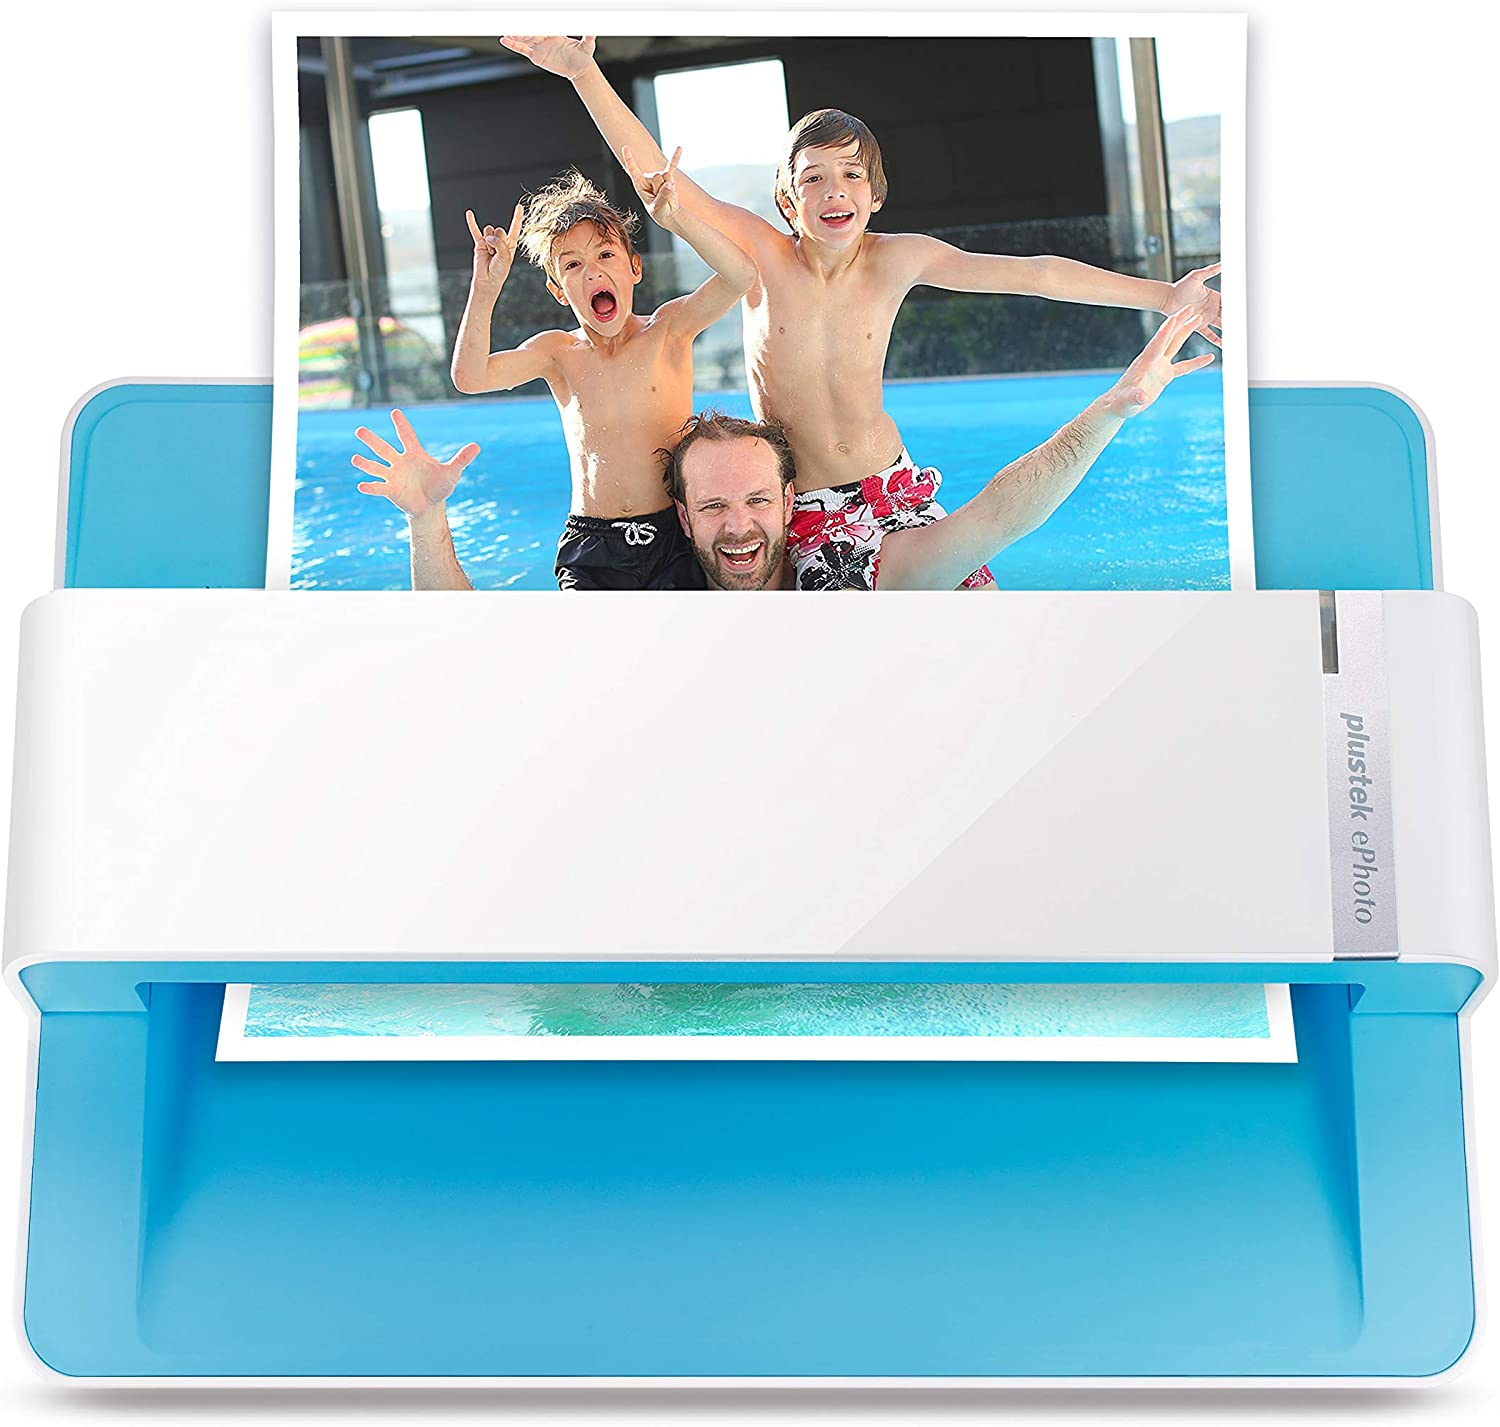 Plustek Photo Scanner - ephoto Z300, Scan 4x6 Photo in 2sec, Auto Crop and Deskew with CCD Sensor. Support Mac and PC: Electronics